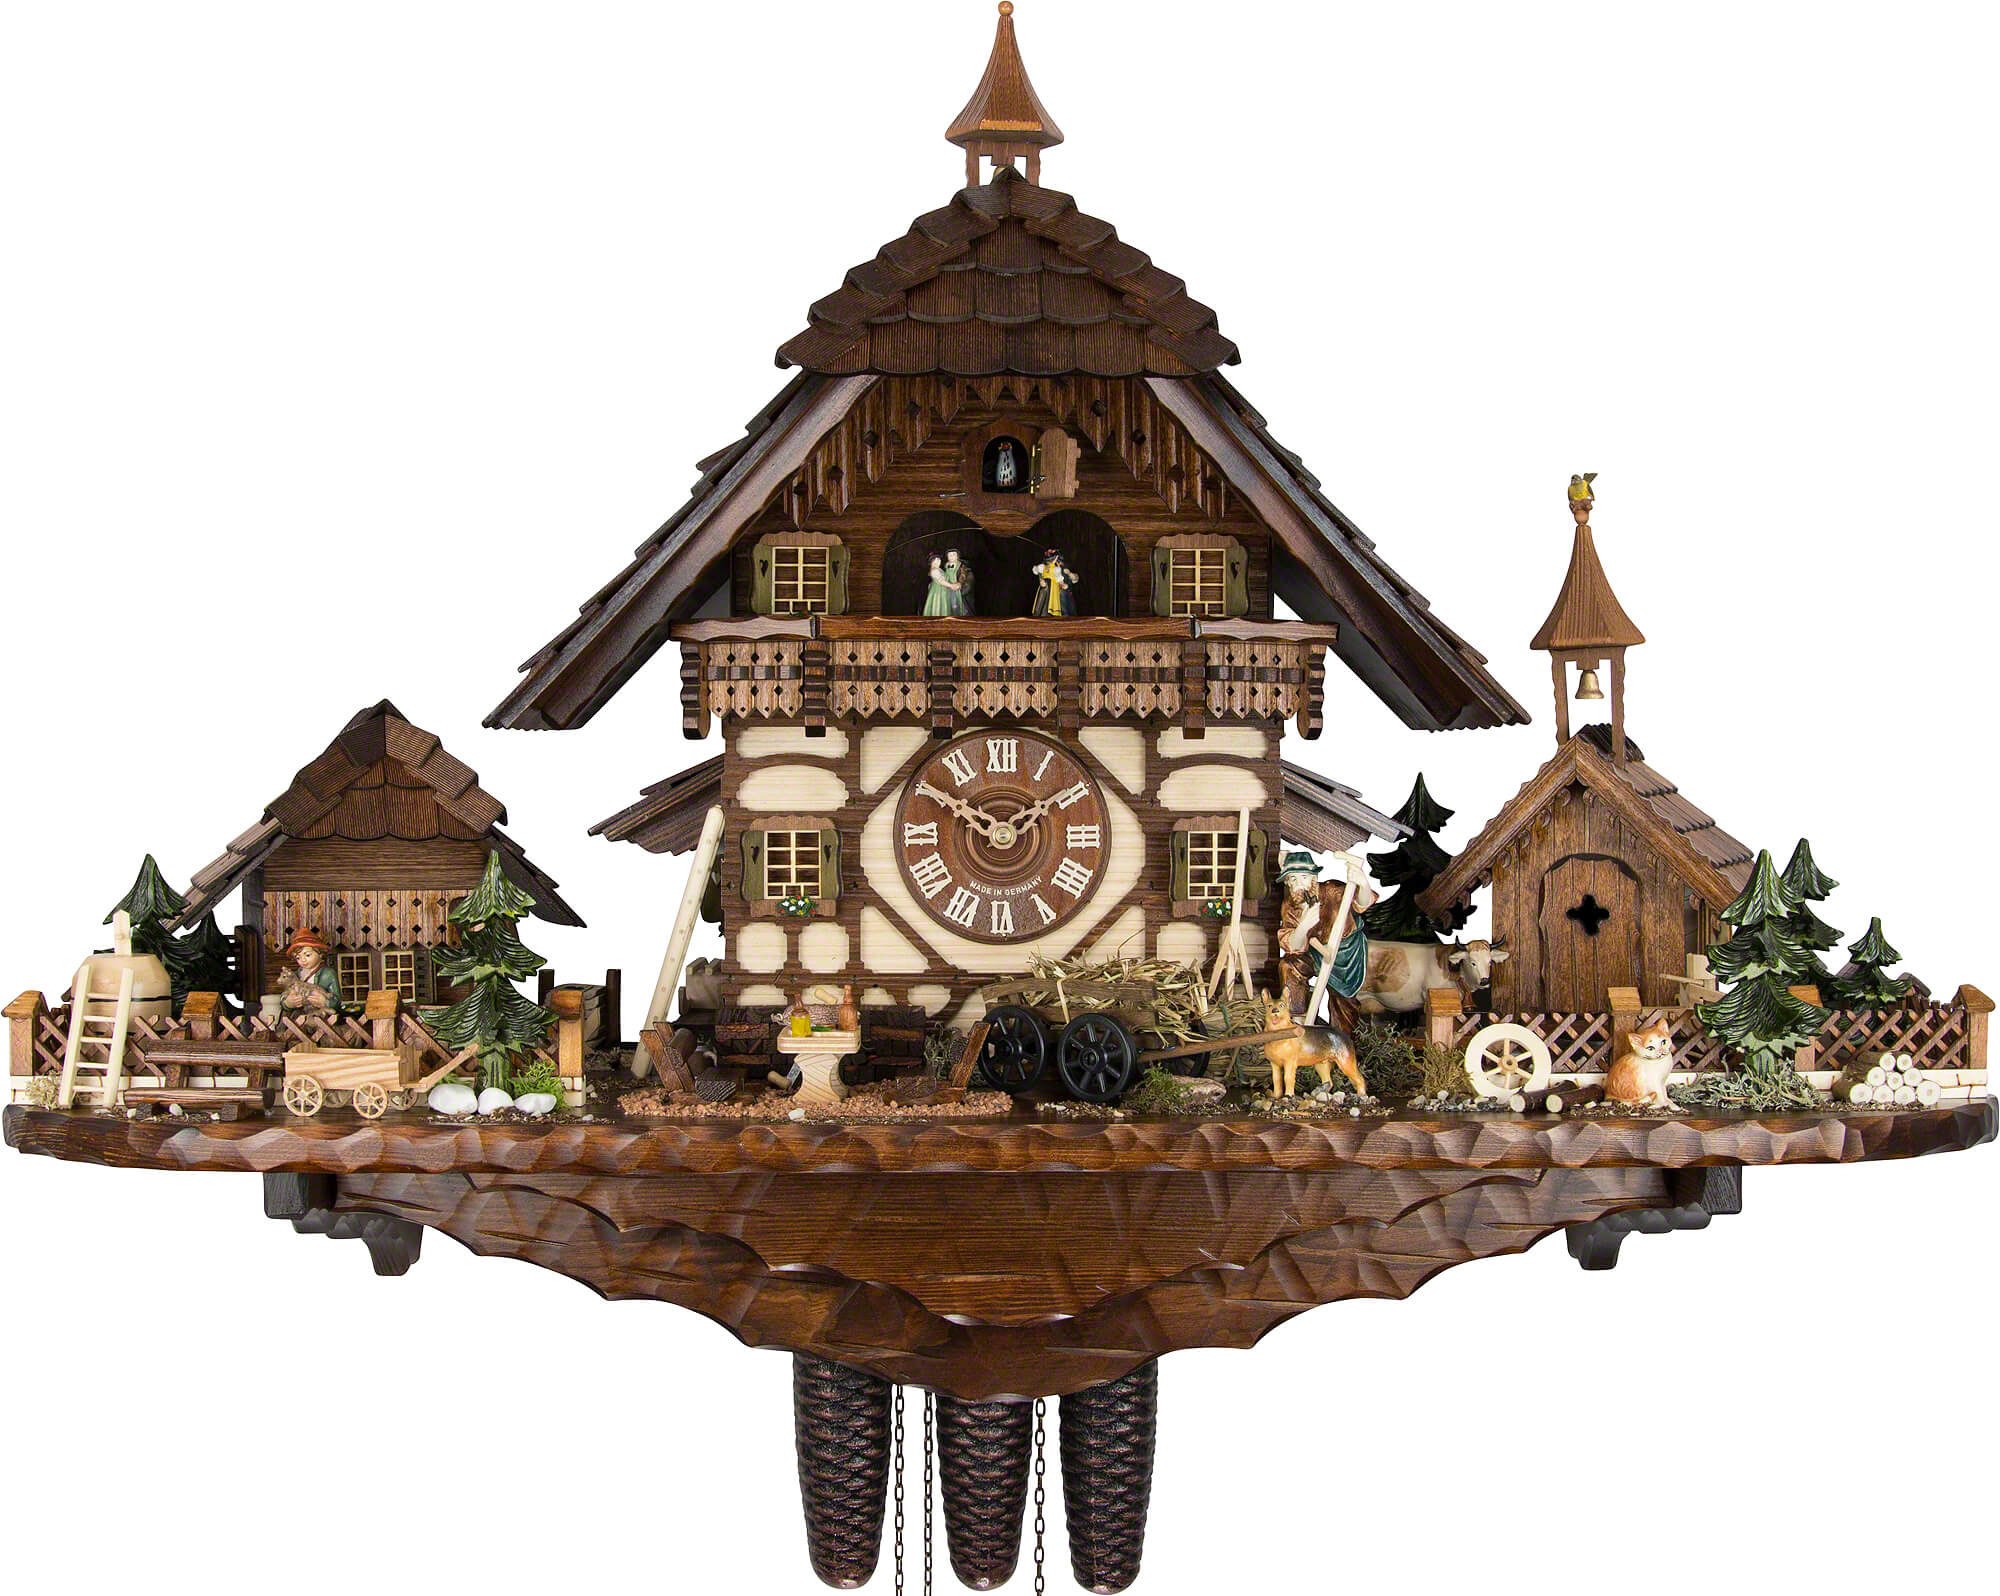 Cuckoo Clock 8-day-movement Chalet-Style 55cm by August ...